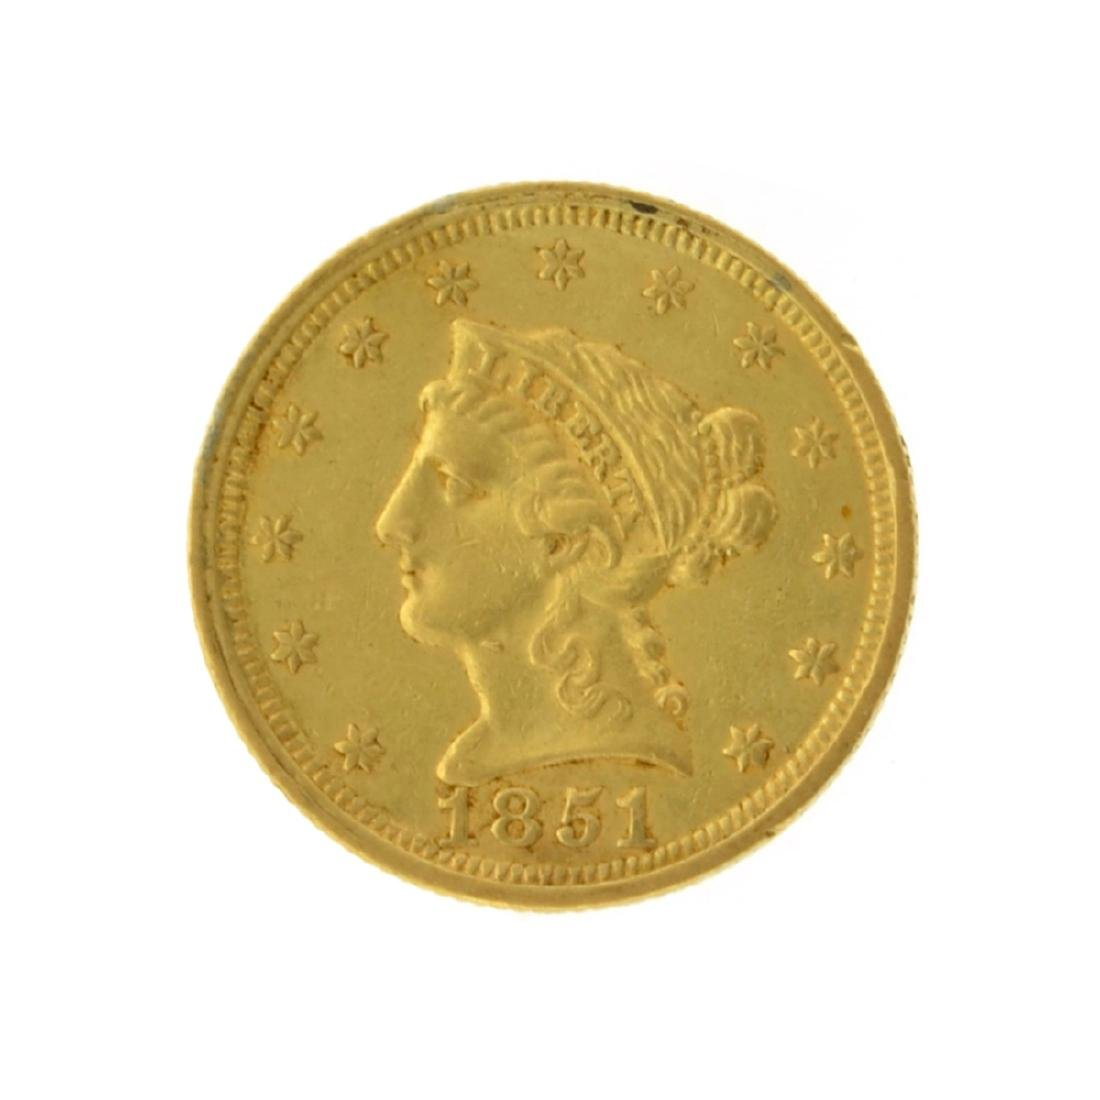 1851 $2.50 Liberty Head Gold Coin